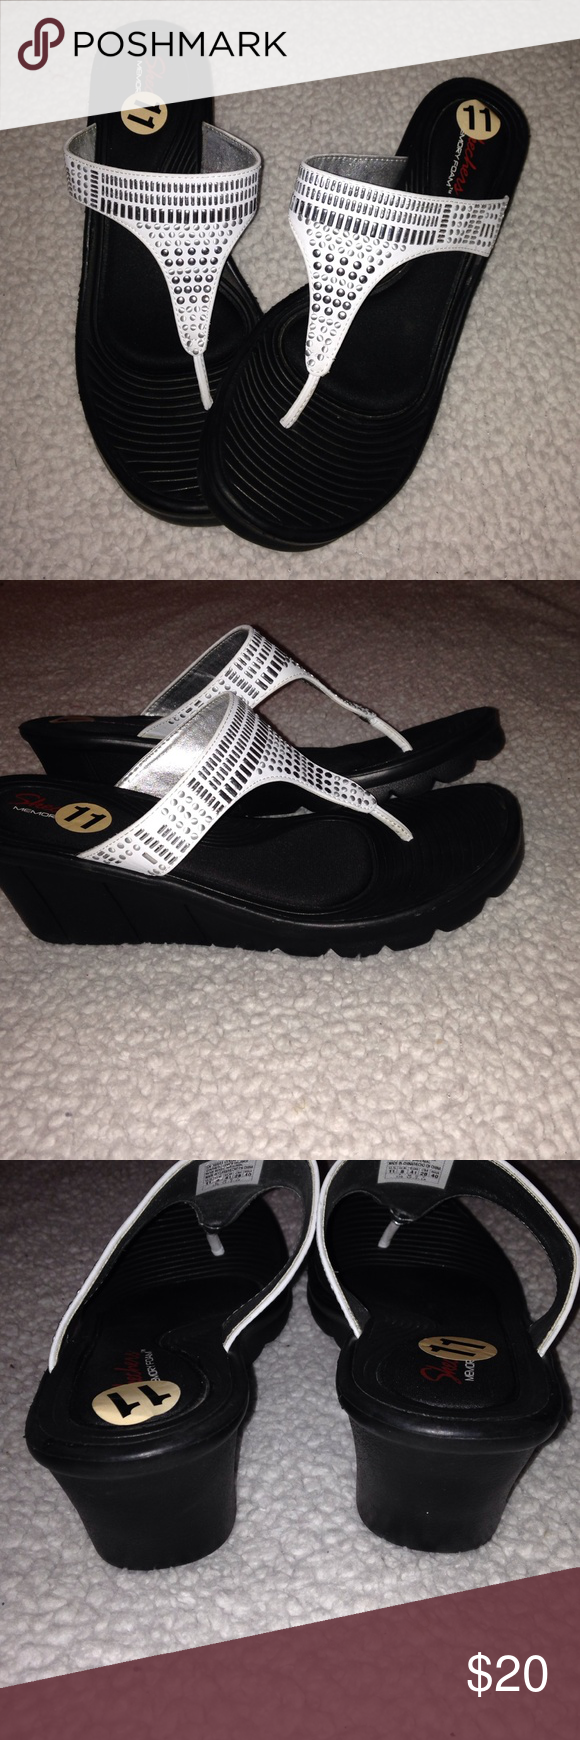 """White Wedge Sandals With Memory Foam By Skechers These sandals are like new. Only wore once to try on. Just too big for me. They have a 2 1/2"""" heel. The memory foam makes them soooo comfyThey are very lightweight as well. No box. Skechers Shoes Sandals"""